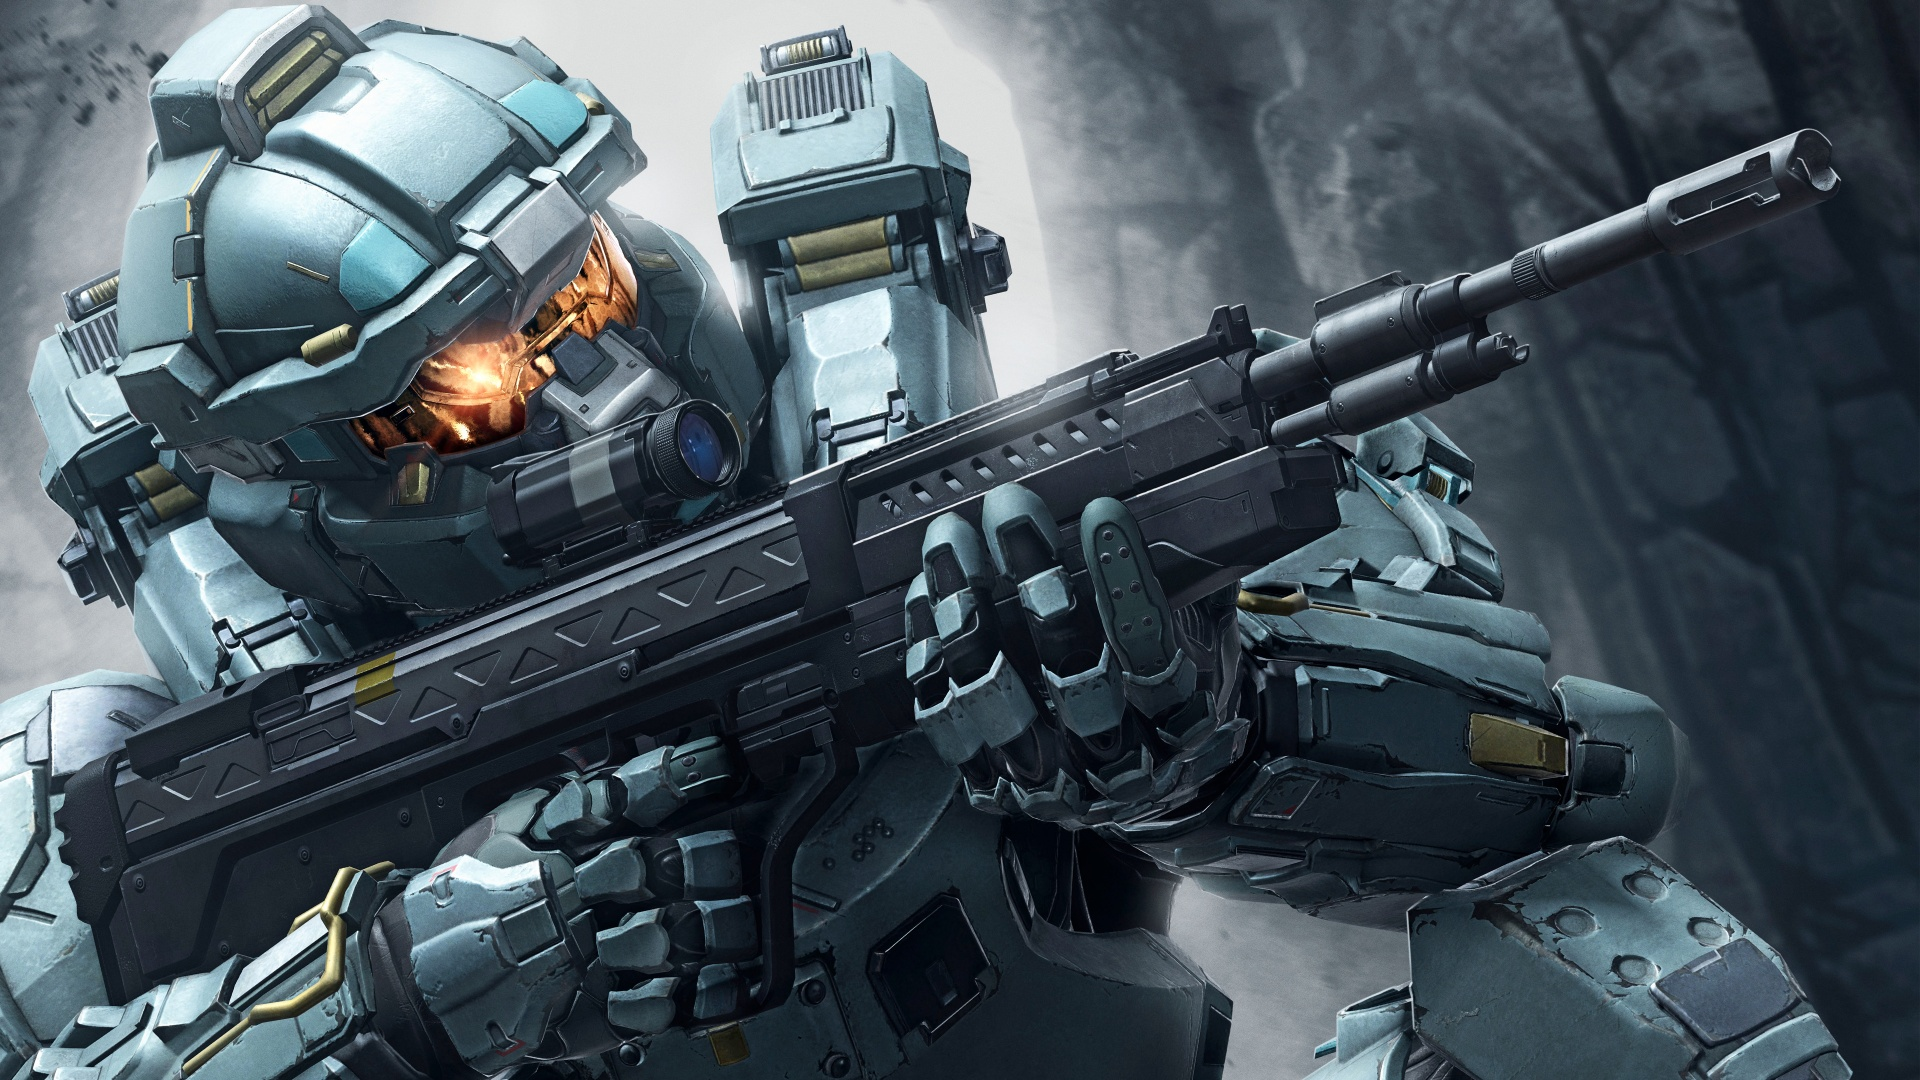 Fred Halo 5 Guardians Wallpapers HD Wallpapers 1920x1080